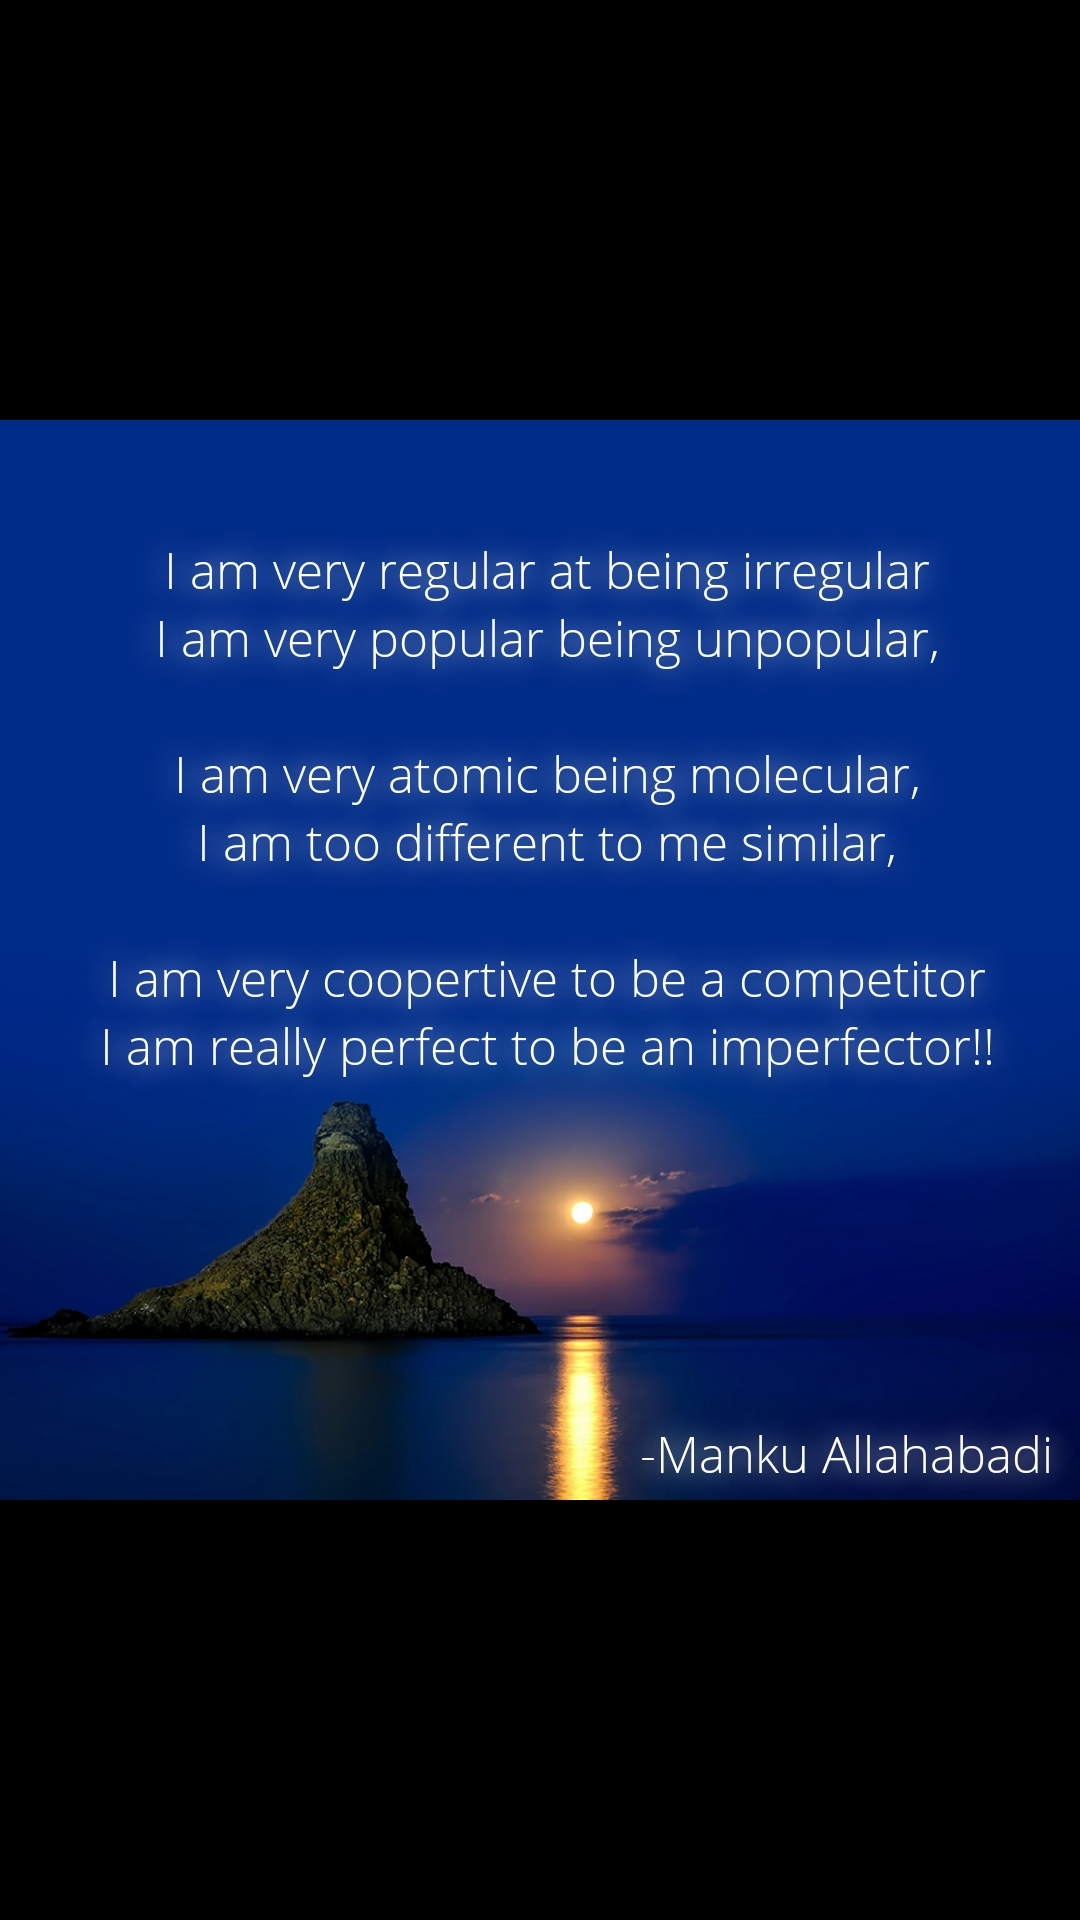 I am very regular at being irregular I am very popular being unpopular,  I am very atomic being molecular, I am too different to me similar,  I am very coopertive to be a competitor I am really perfect to be an imperfector!!                                                    -Manku Allahabadi